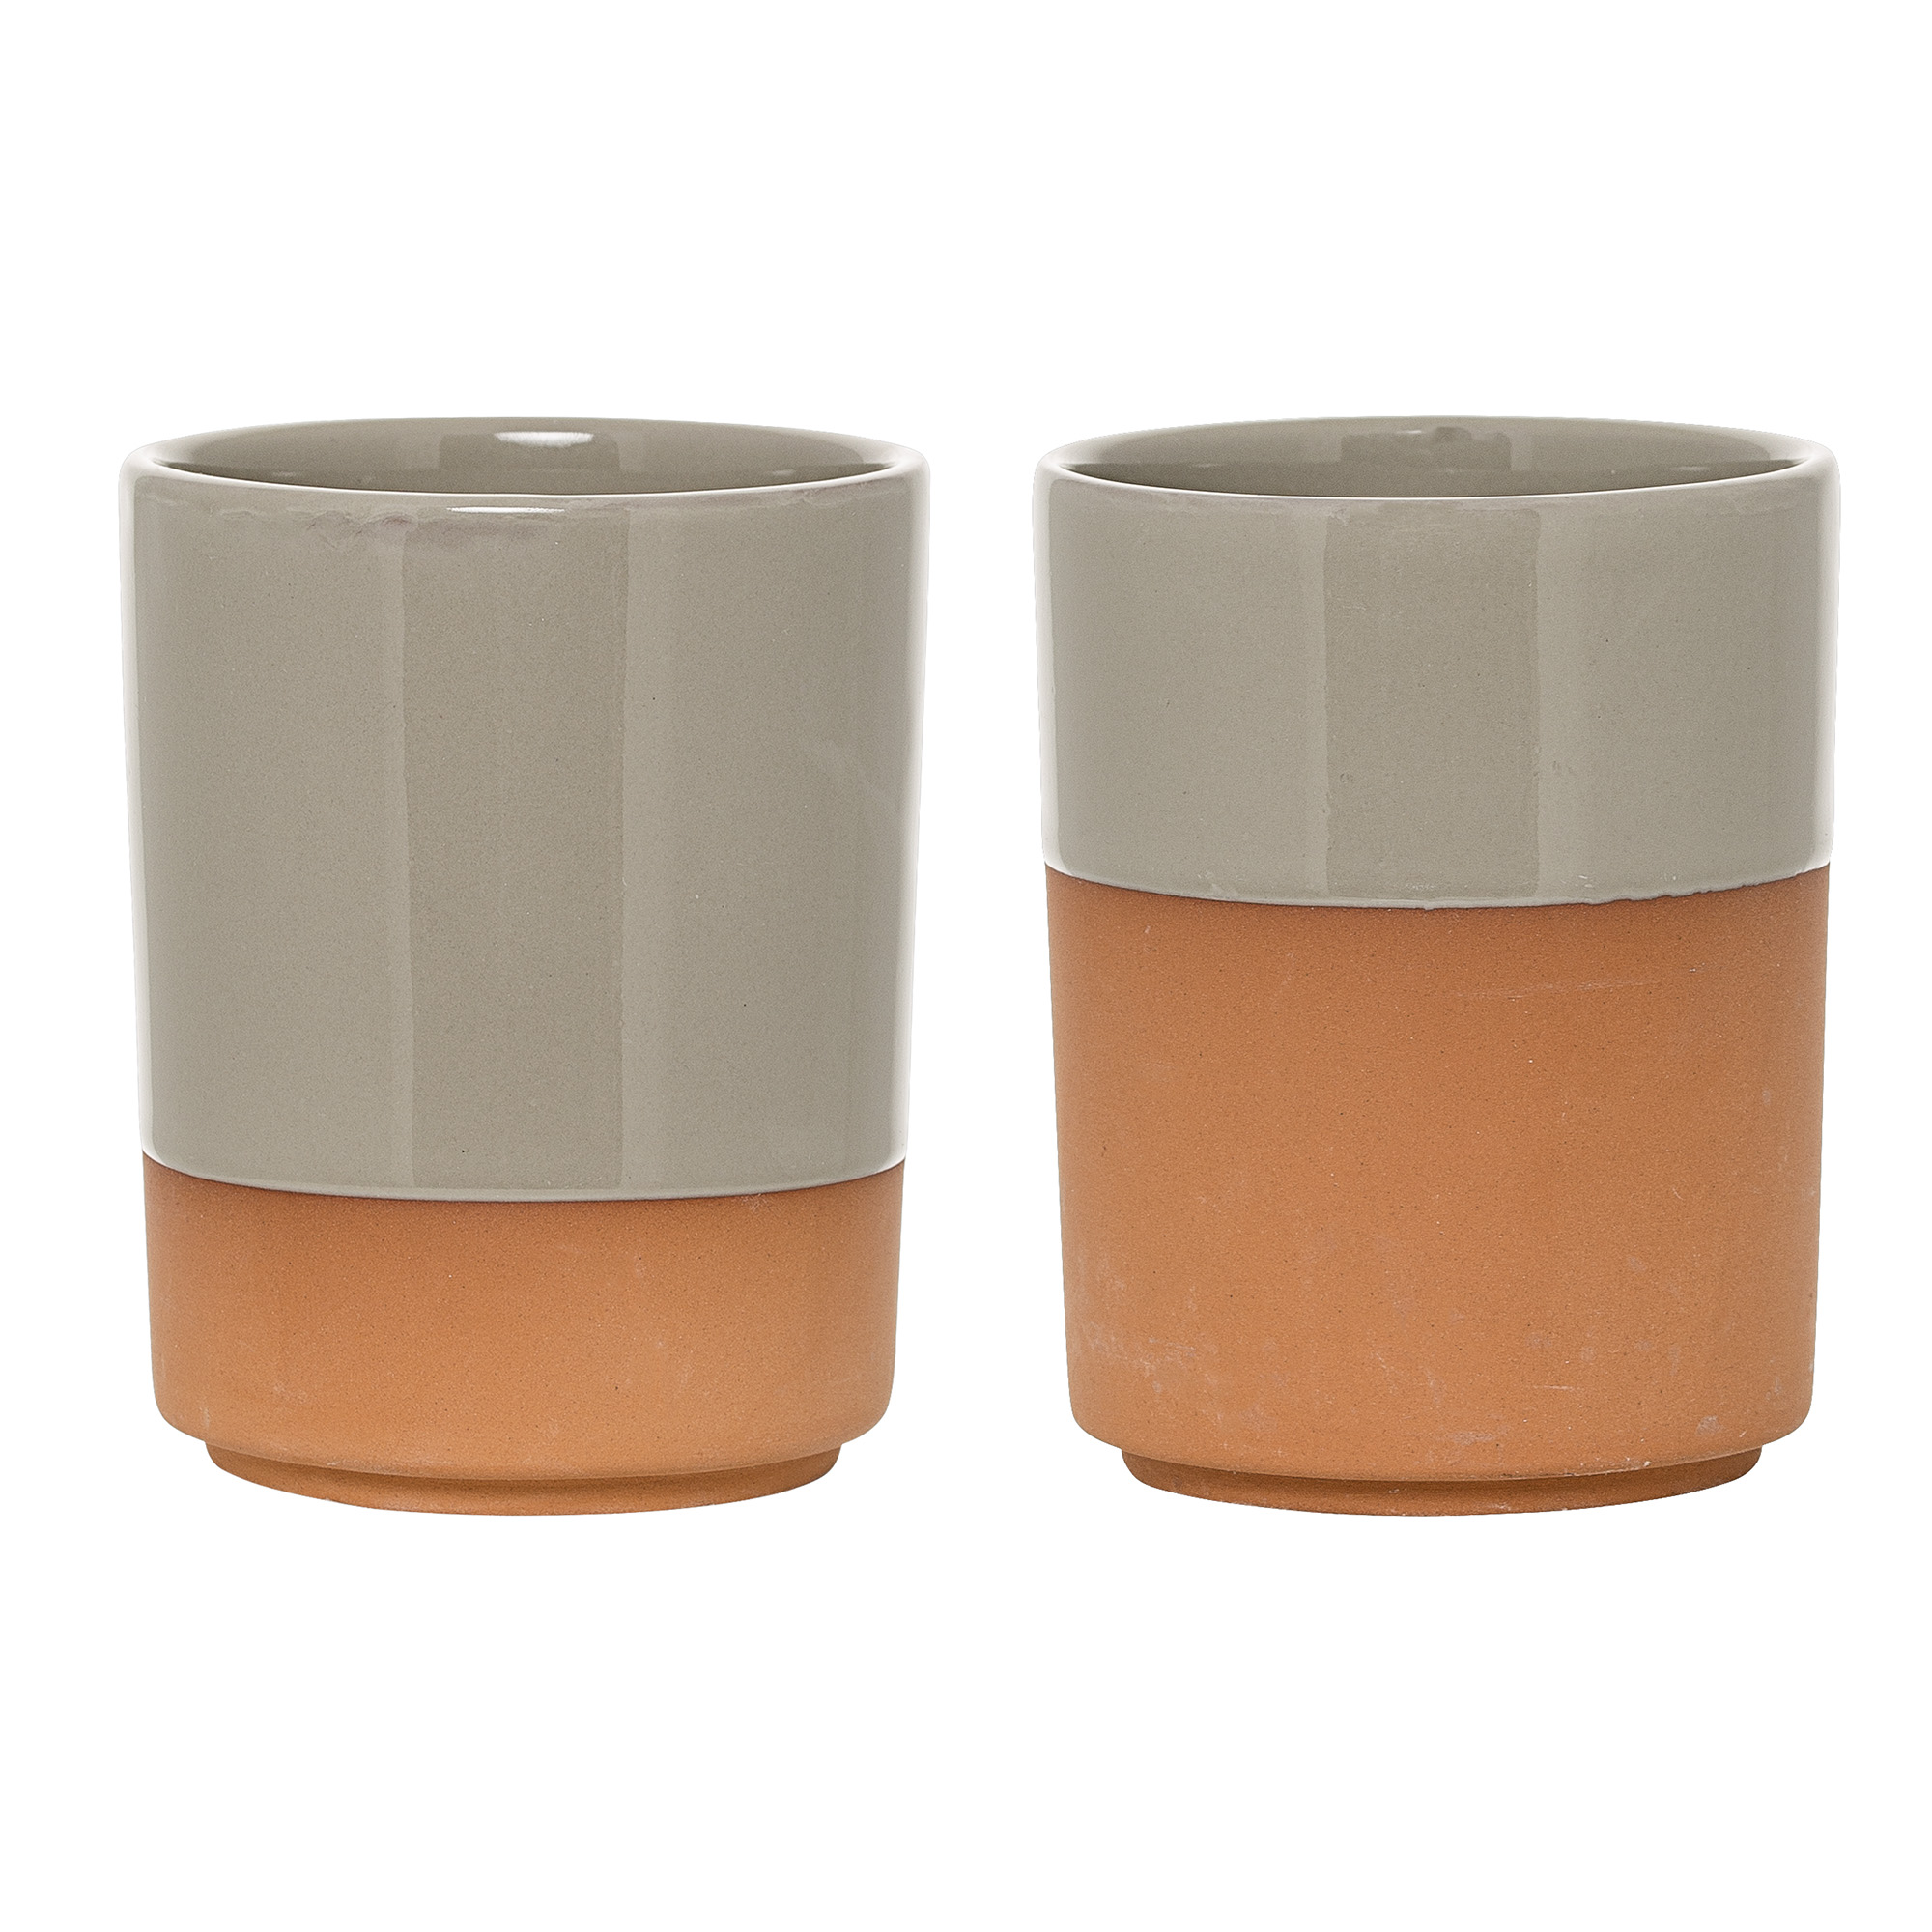 Image of   Cup, terracotta/grey